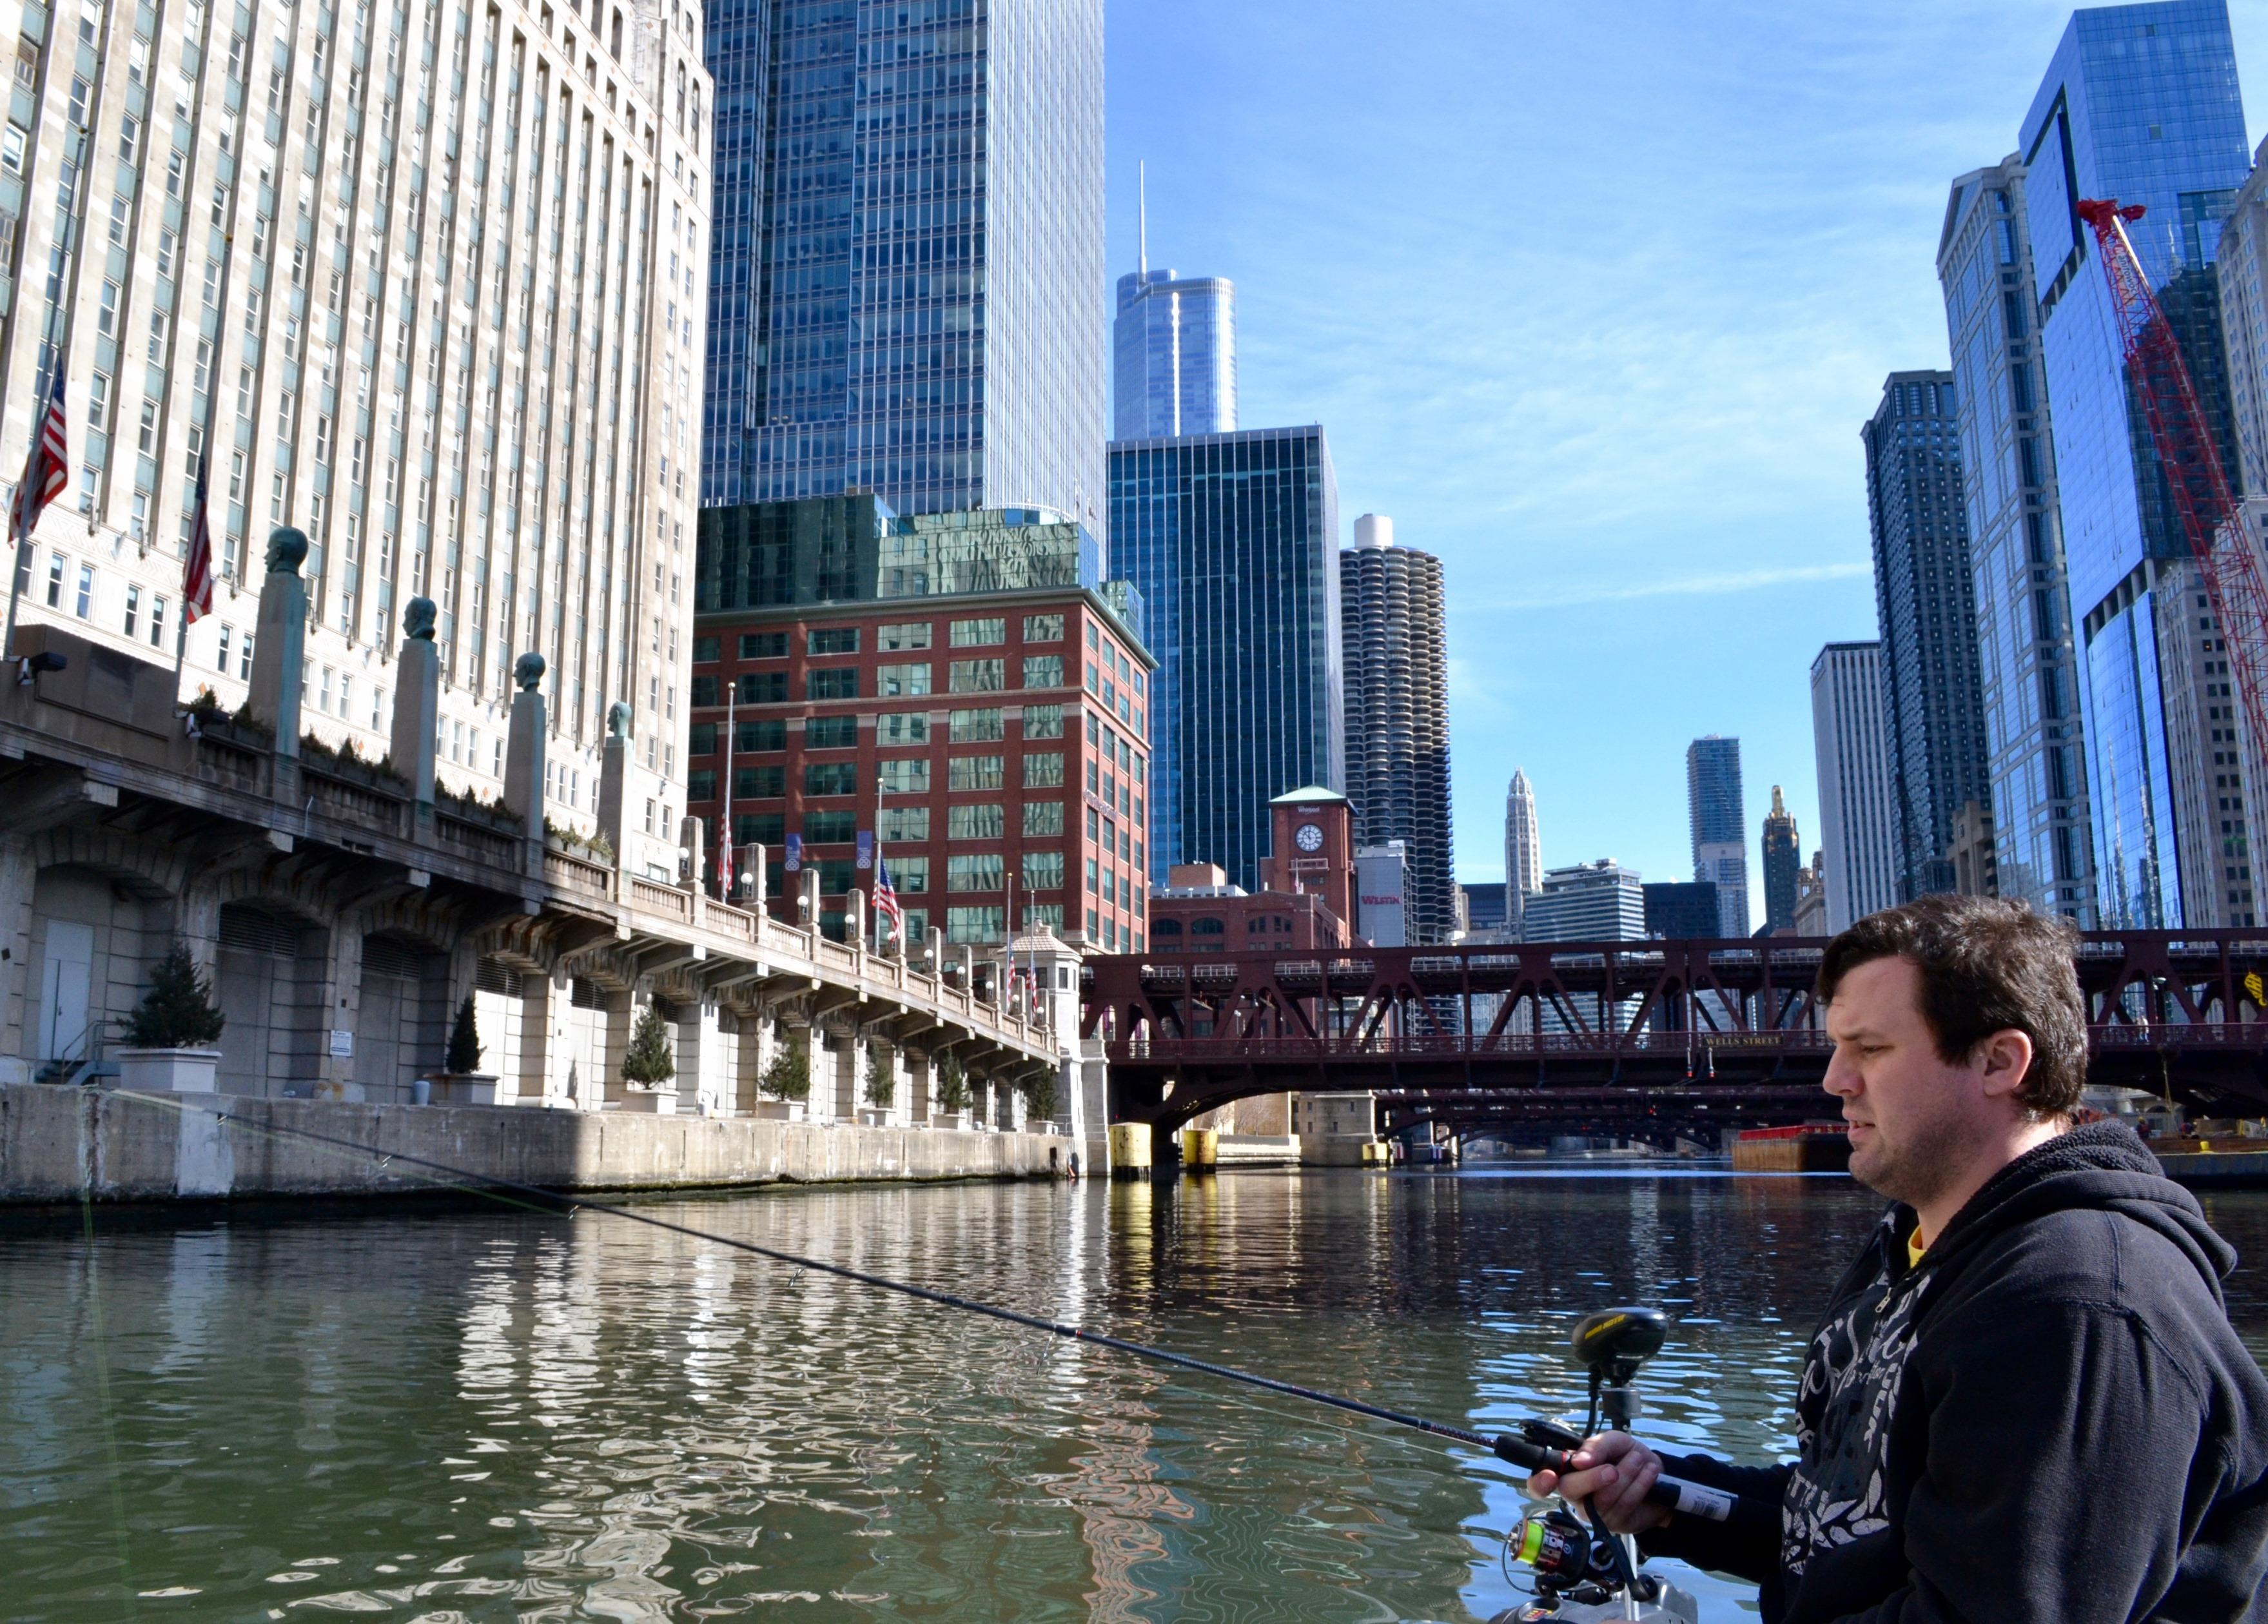 Fishing on the chicago river chicago tonight wttw for Fish on main